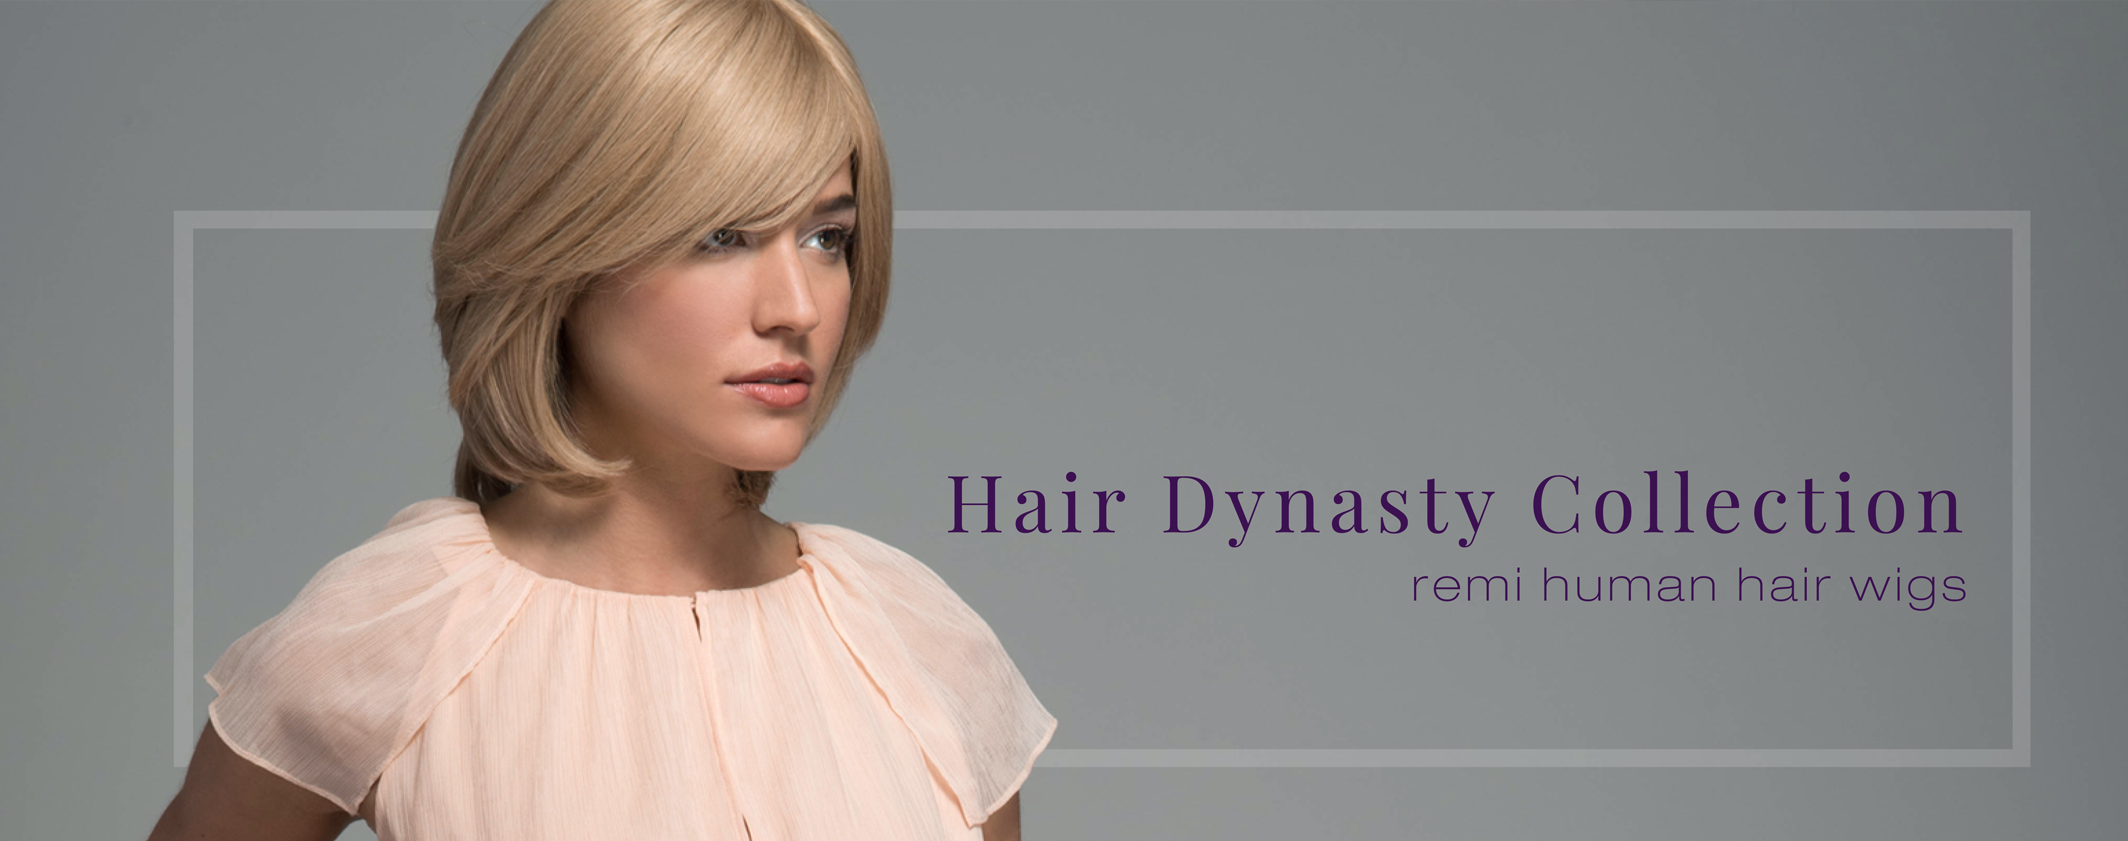 Hair Dynasty Collection